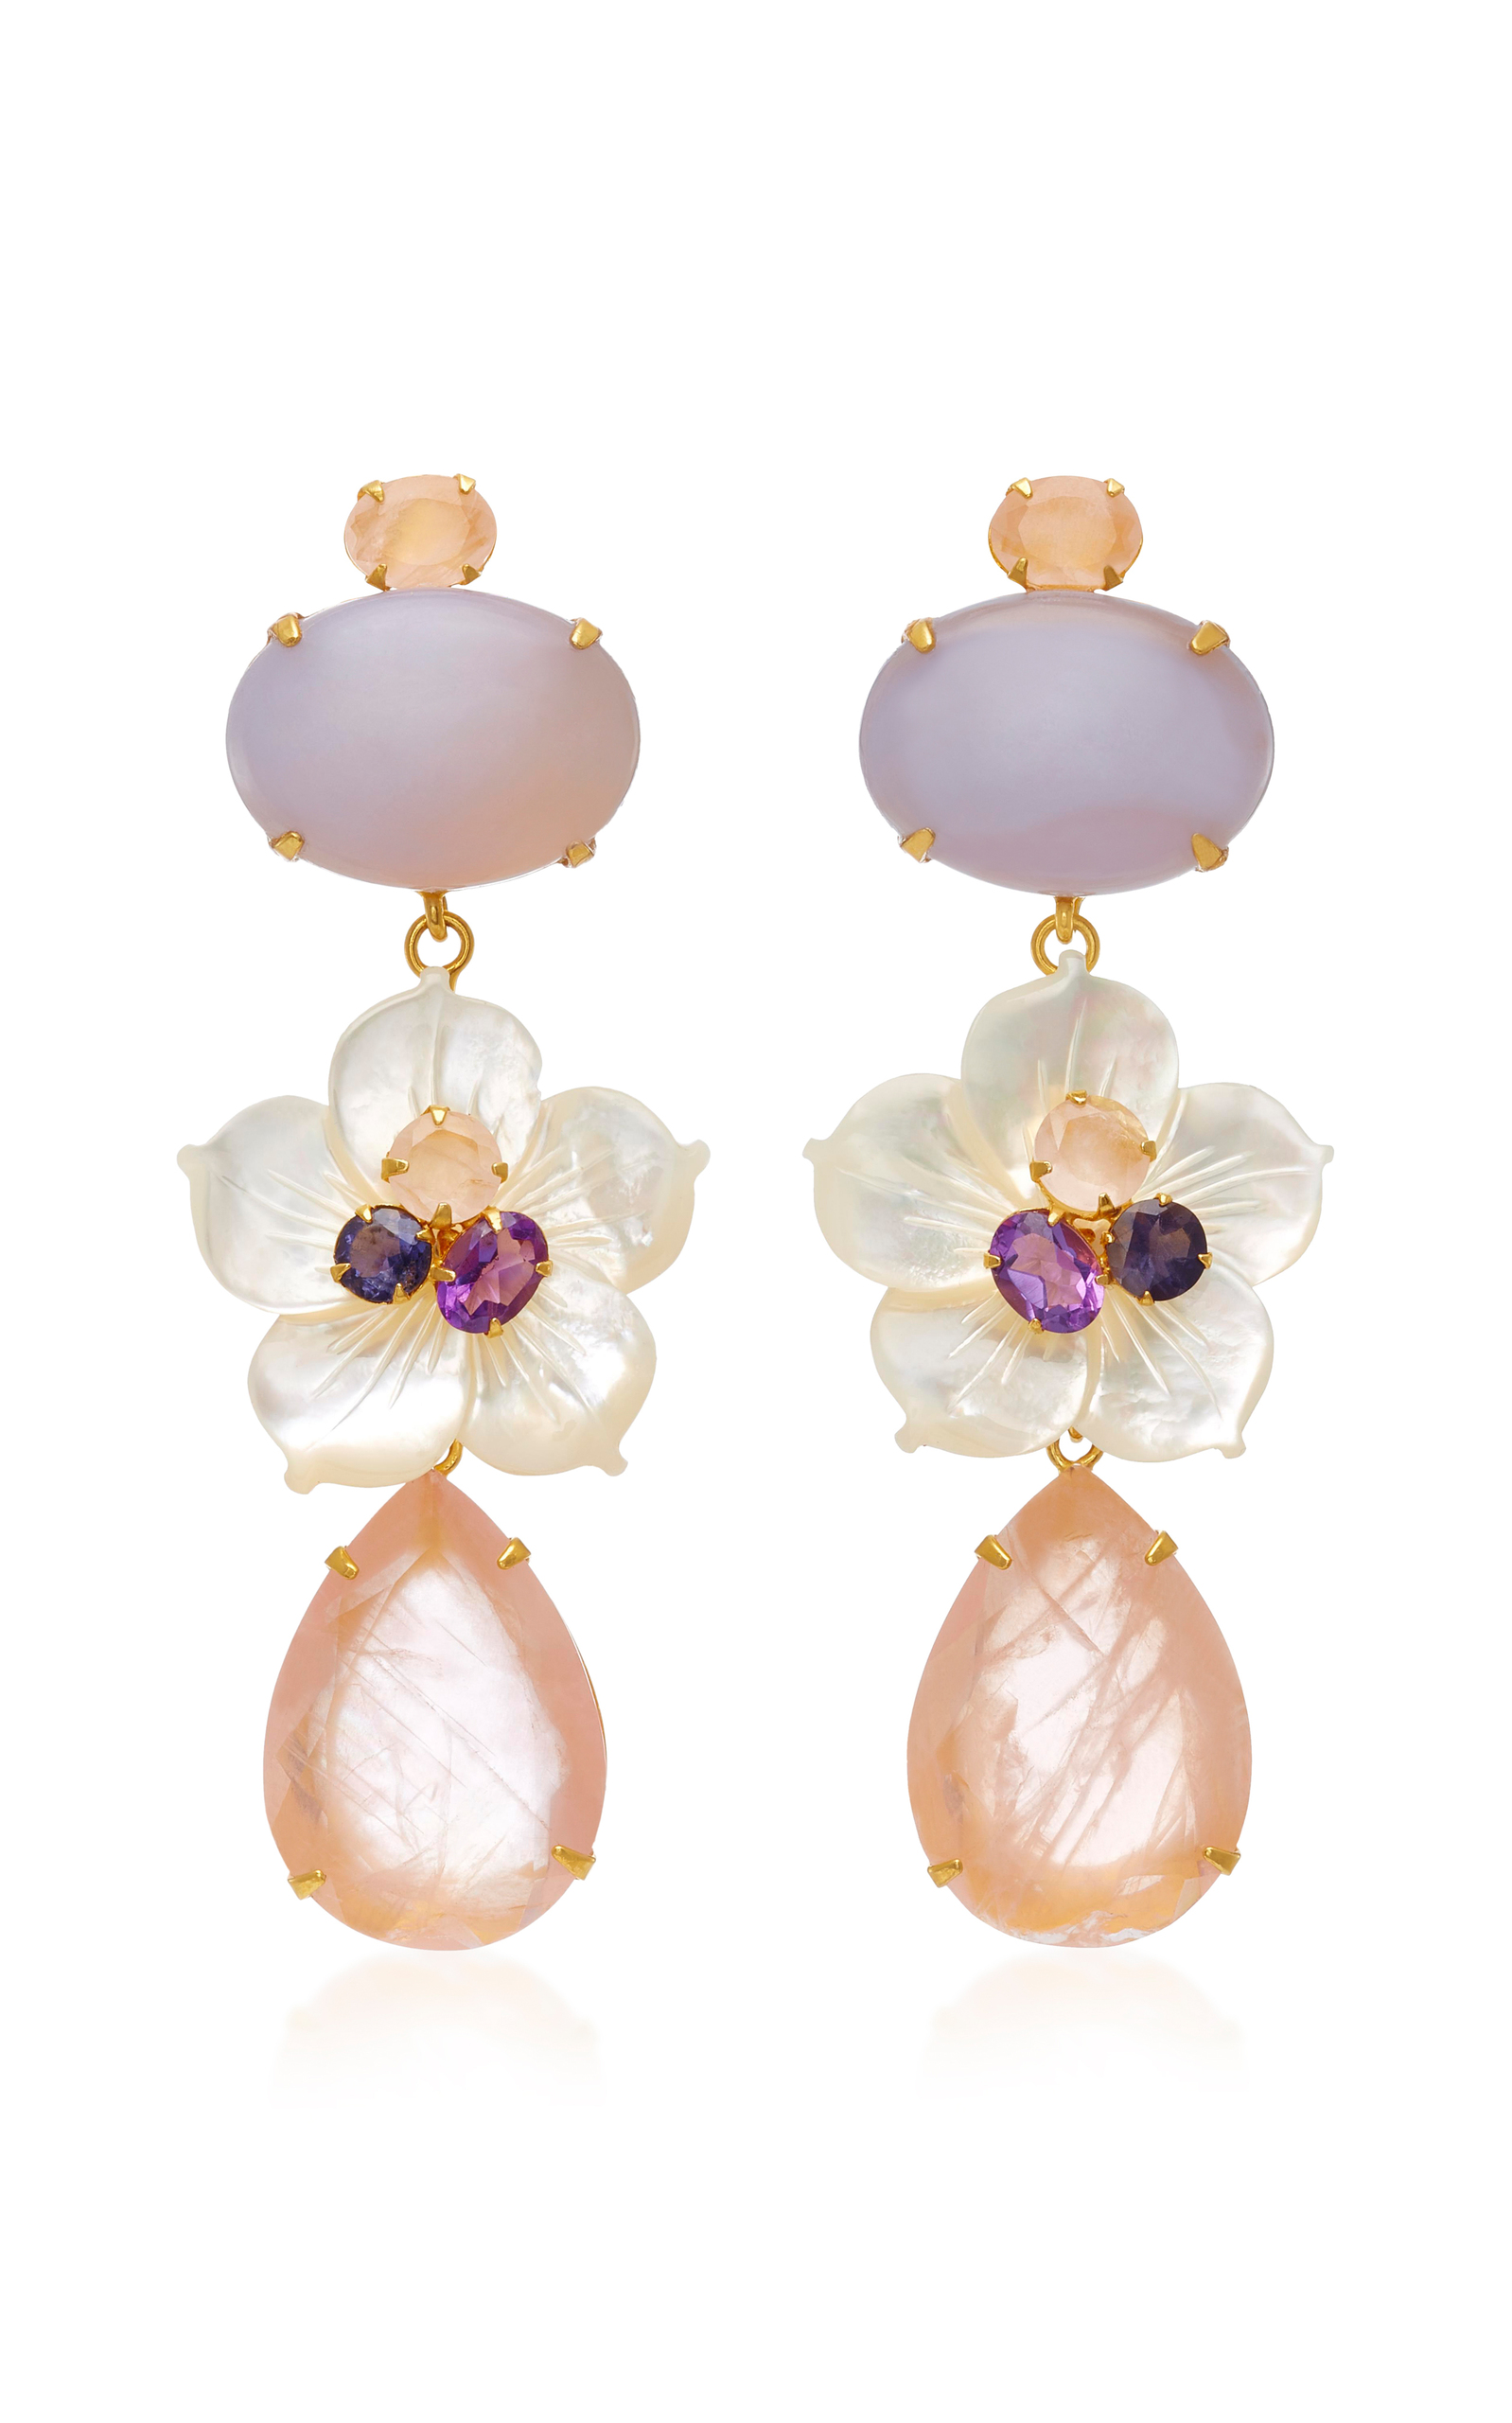 14K Gold-Plated Brass Chalcedony Mother of Pearl Amethyst Lolite Rose Quartz Earrings Bounkit BtRXha